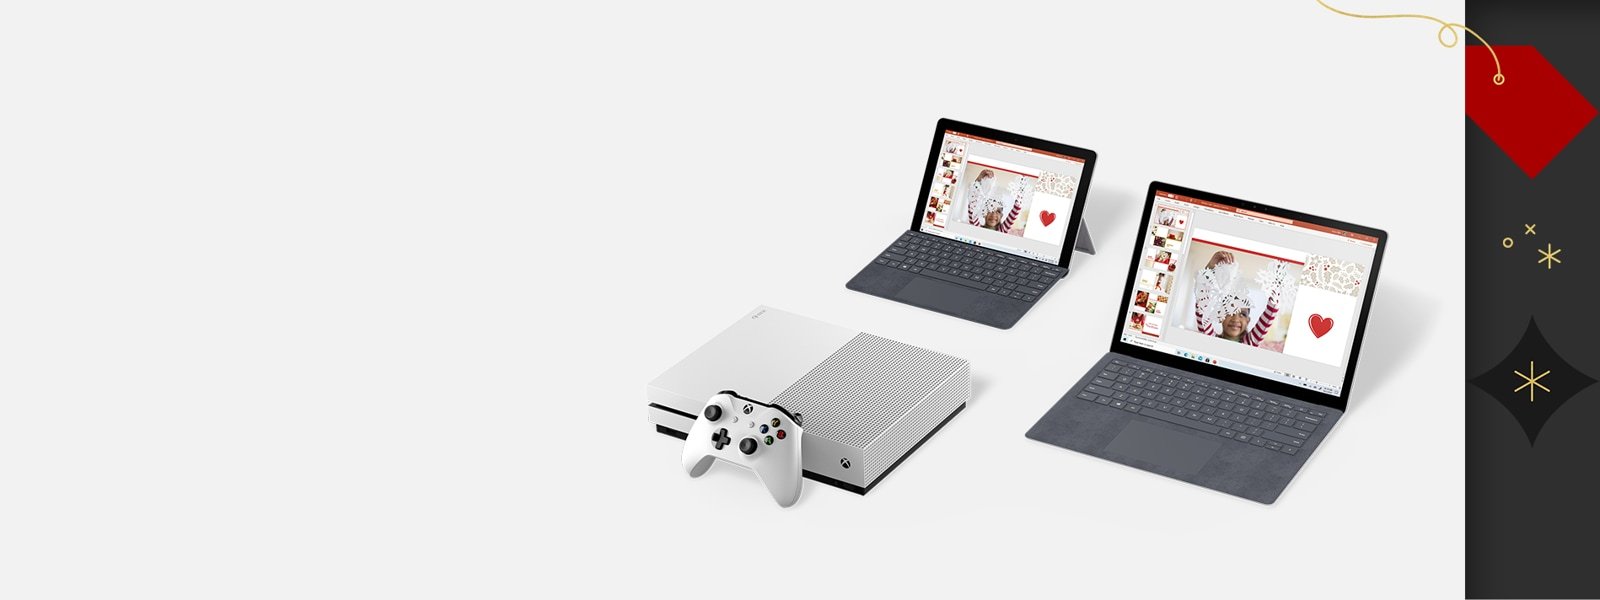 Surface Pro 7, Surface Laptop 3 und Xbox One S